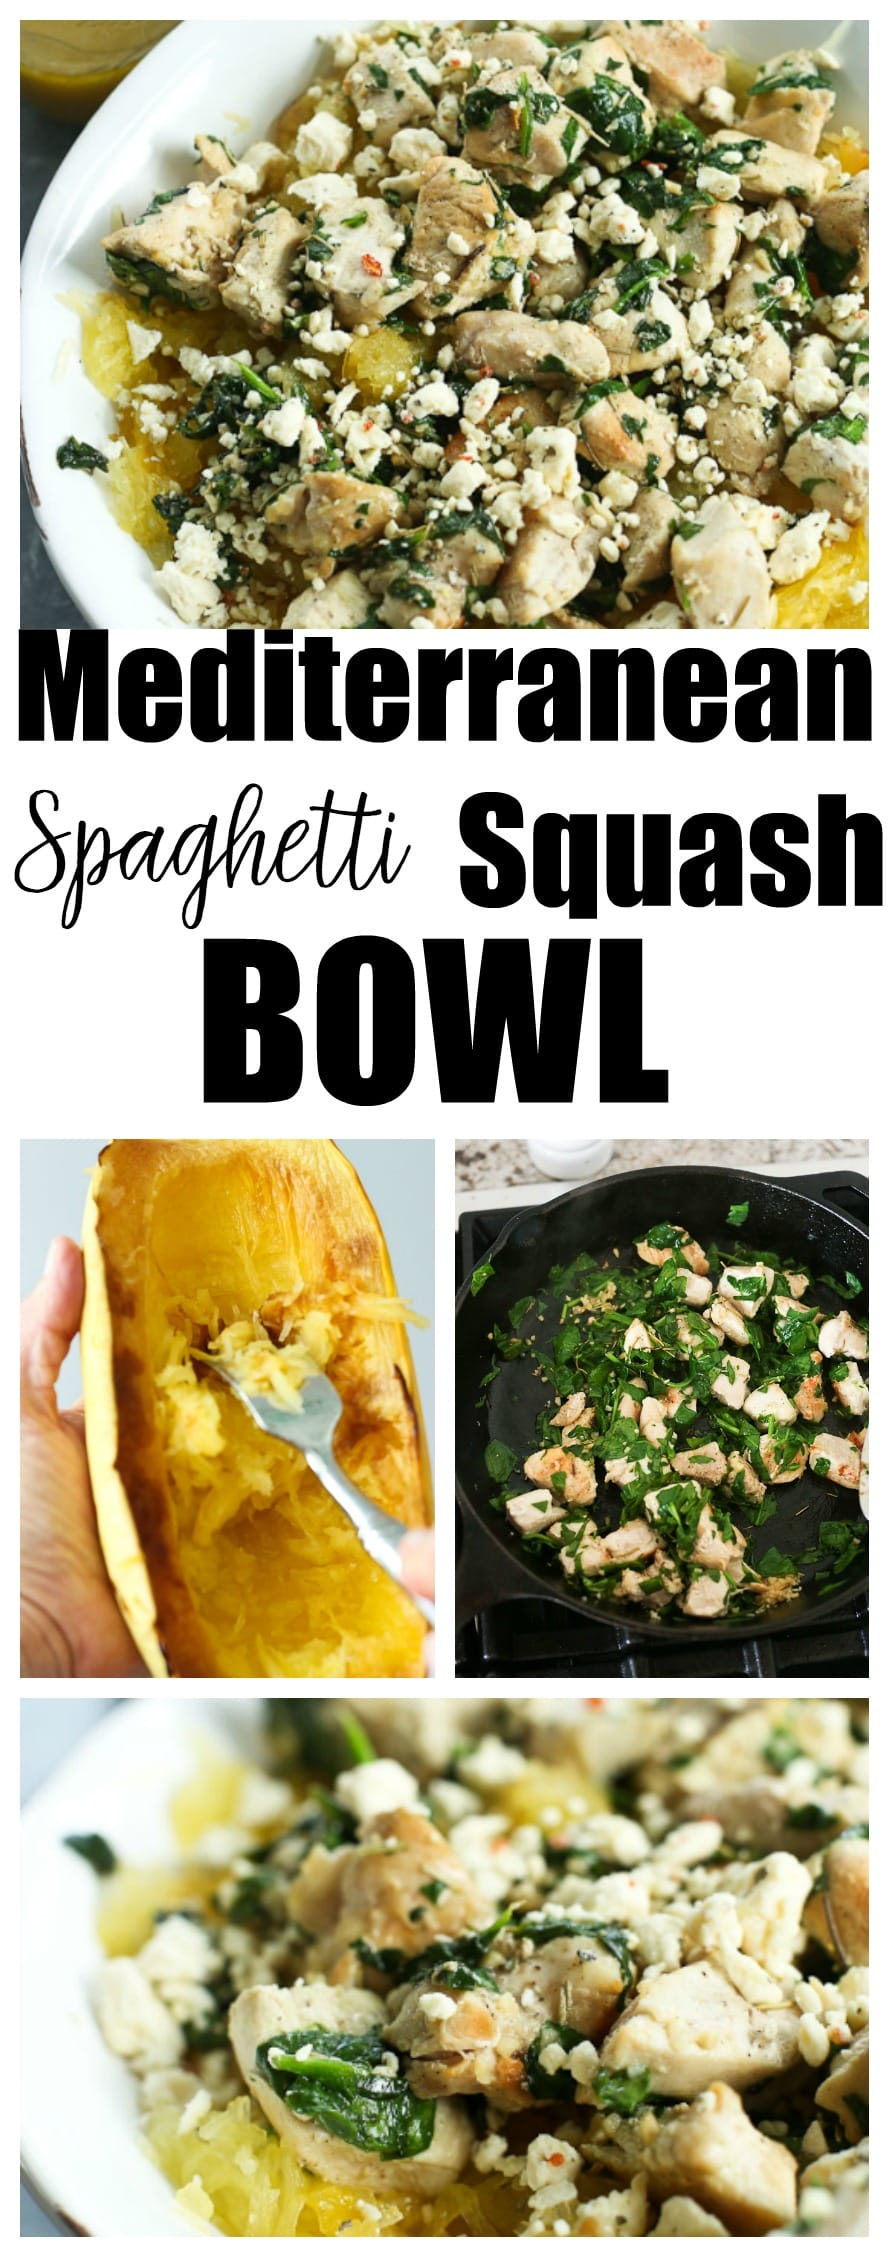 Mediterranean Spaghetti Squash Bowl Recipe. Healthy weeknight dinner idea! #glutenfree #healthyrecipes